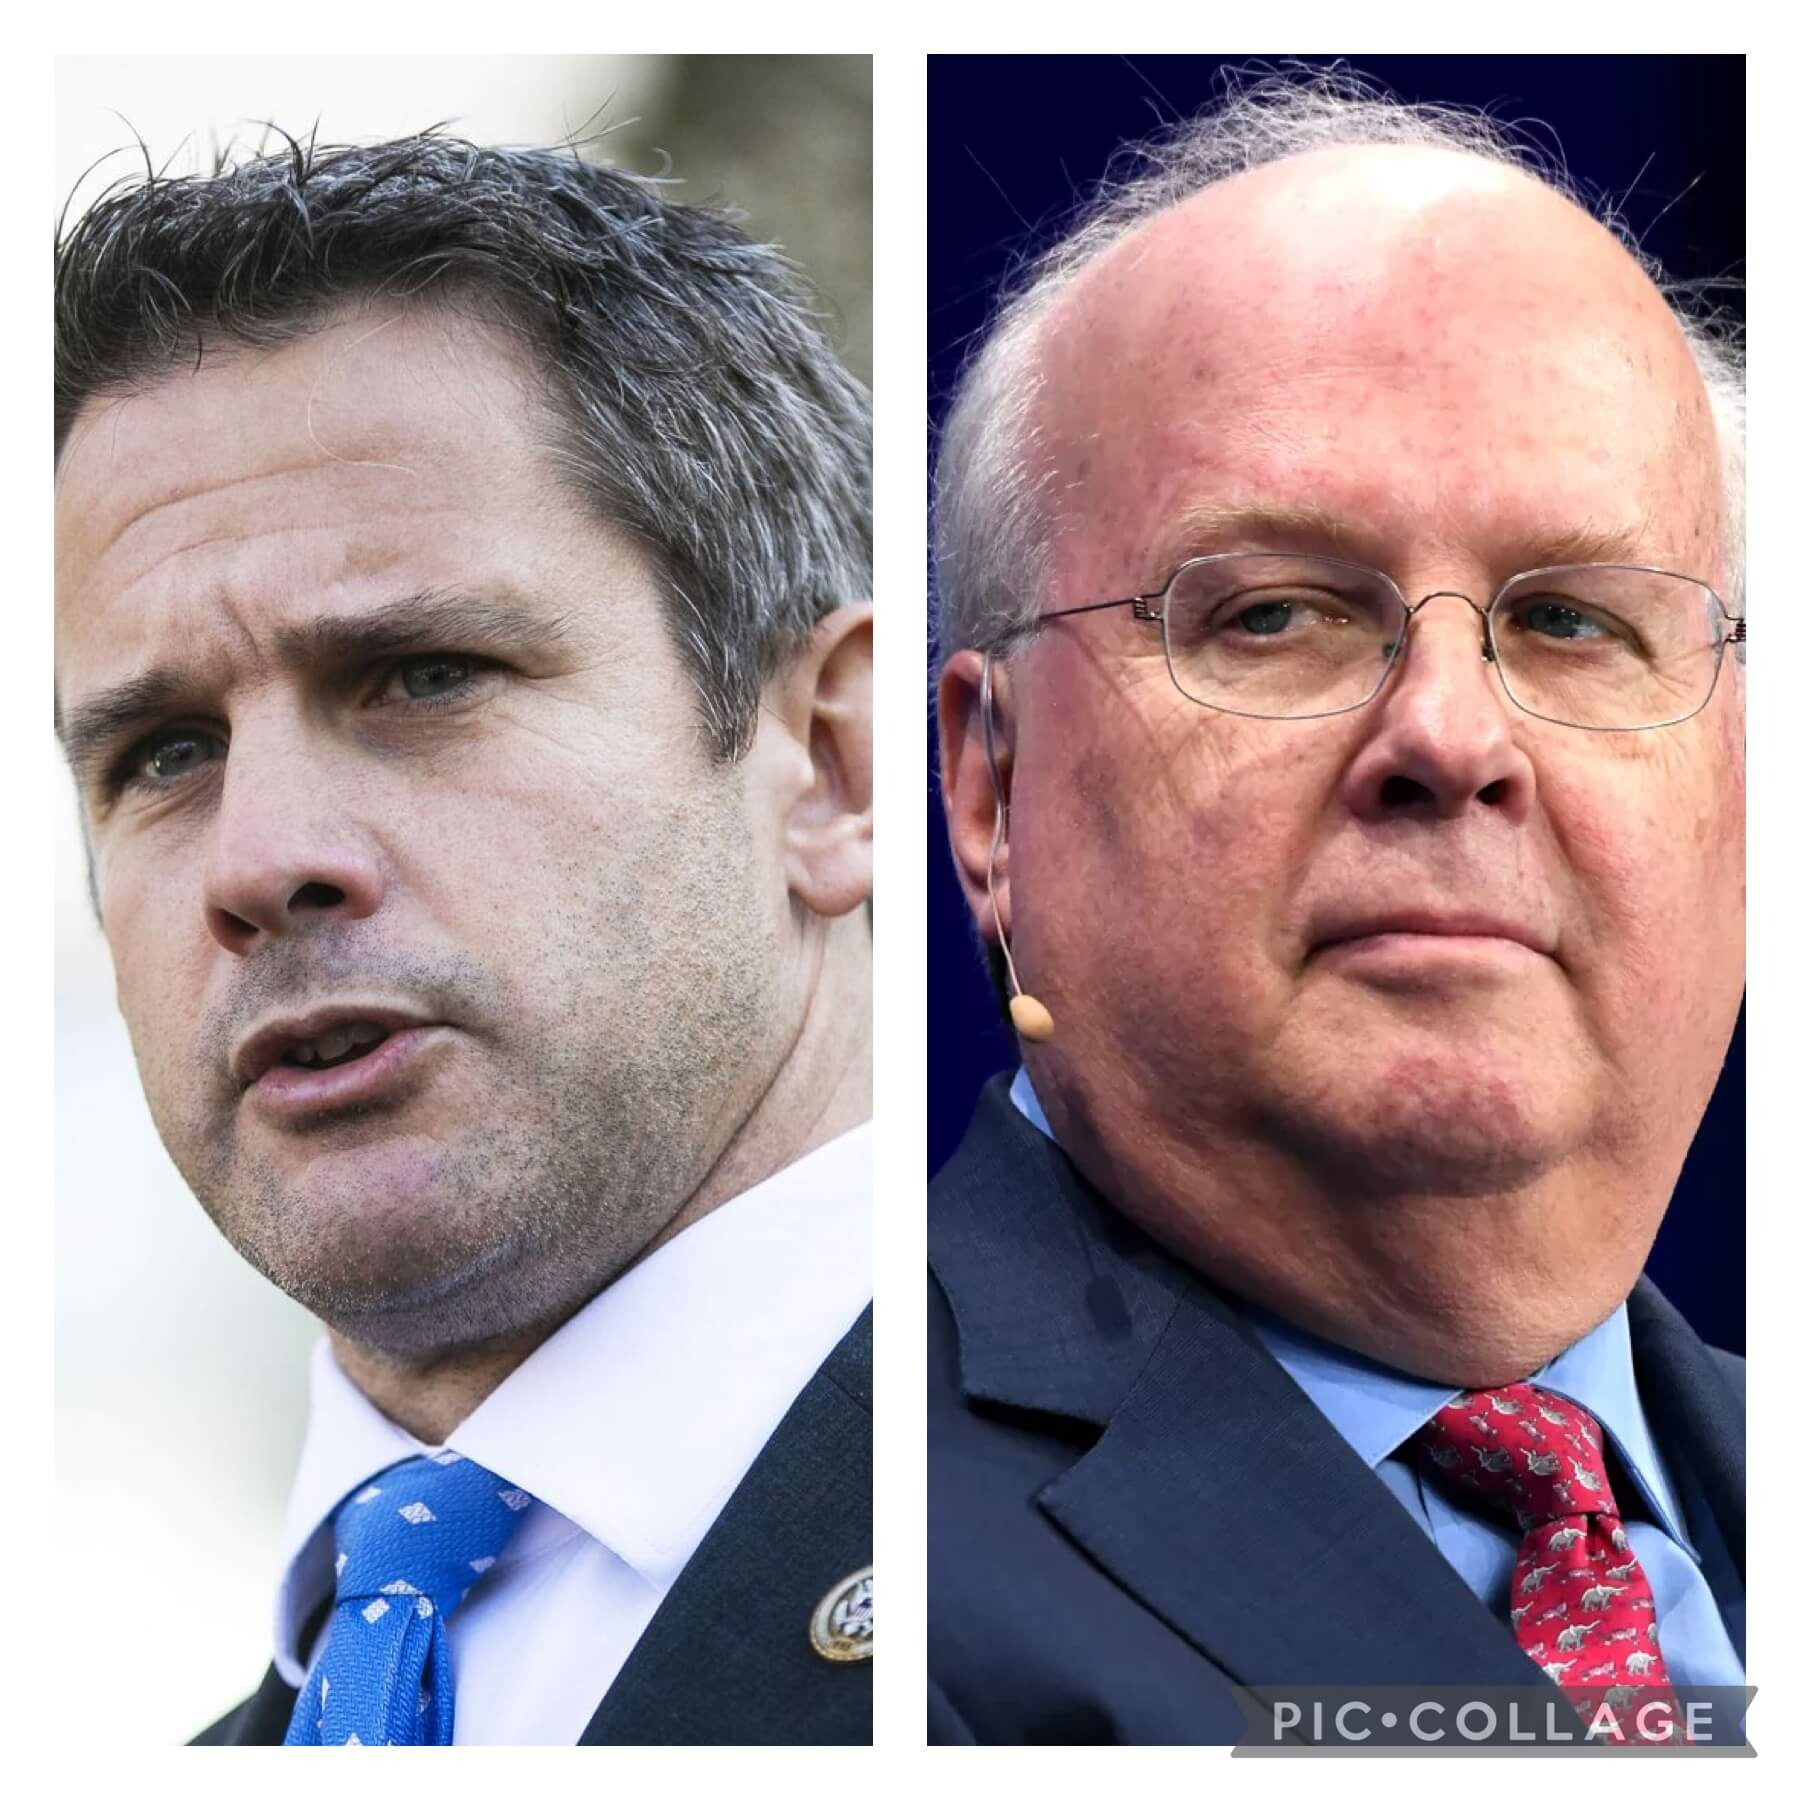 Statement on Karl Rove Supporting Adam Kinzinger